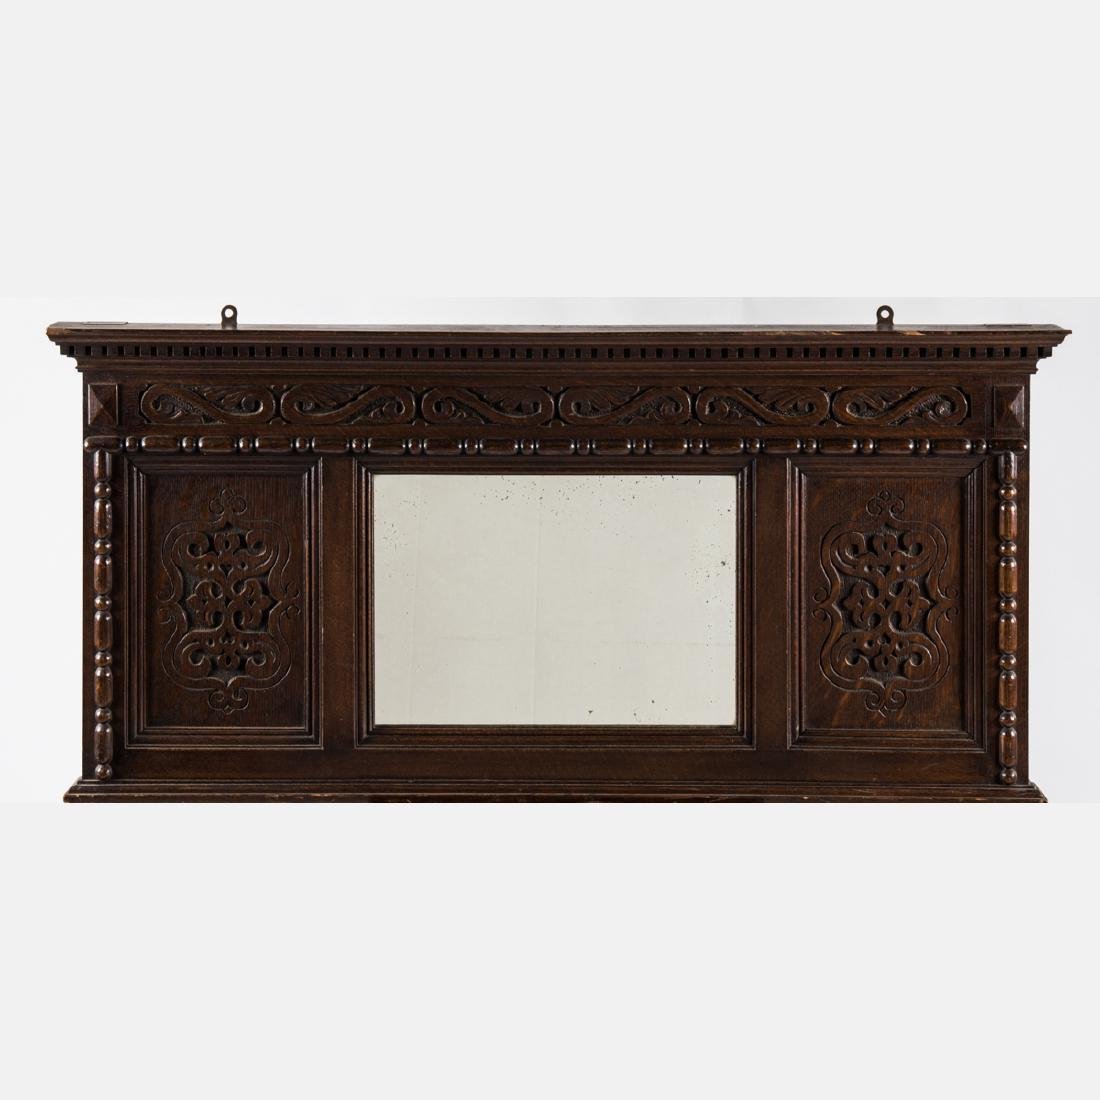 An English Carved Oak Mirror, 20th Century.